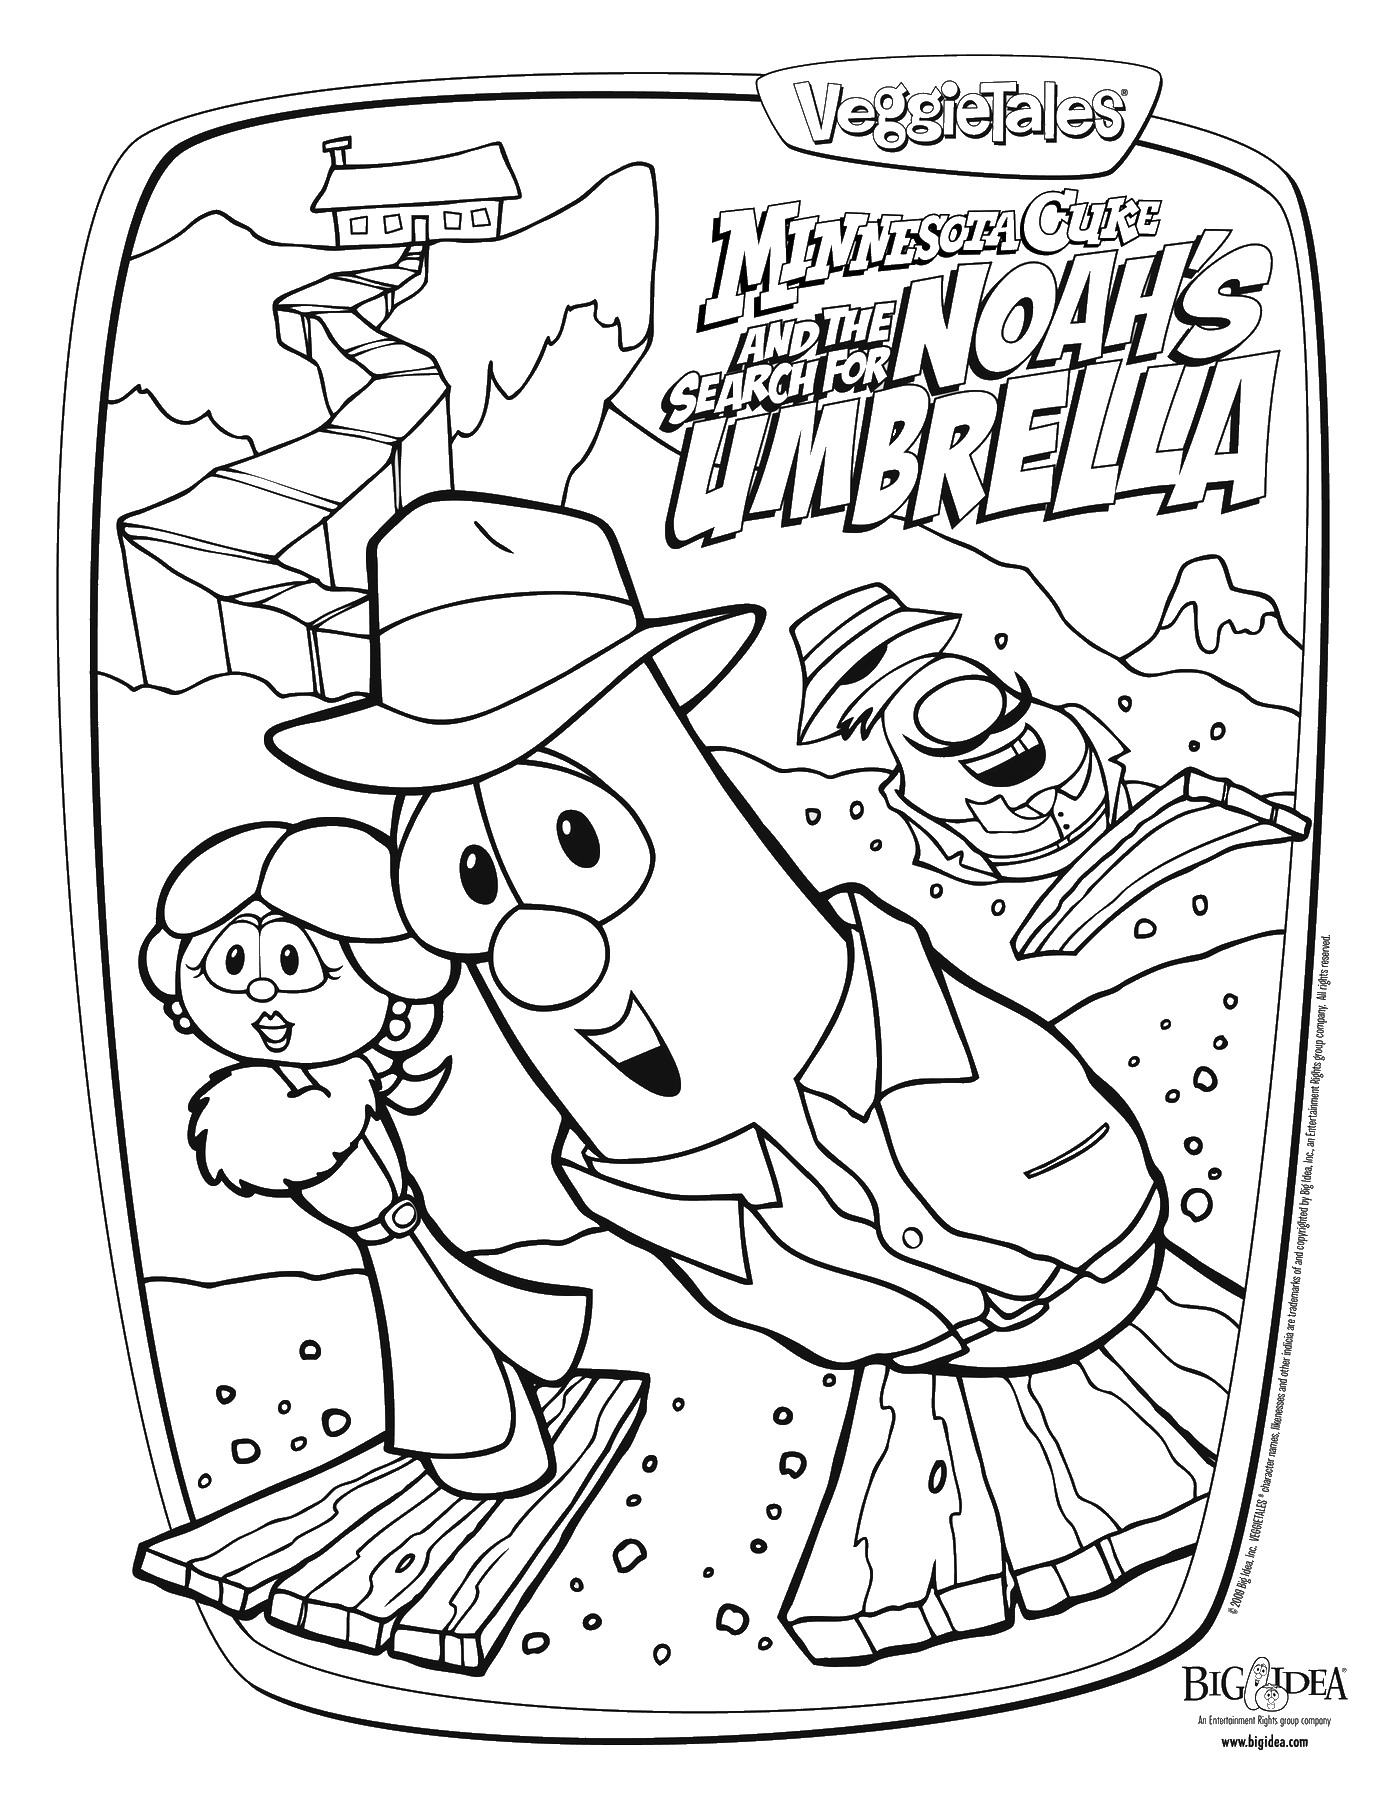 HD wallpapers veggie tales coloring book pages